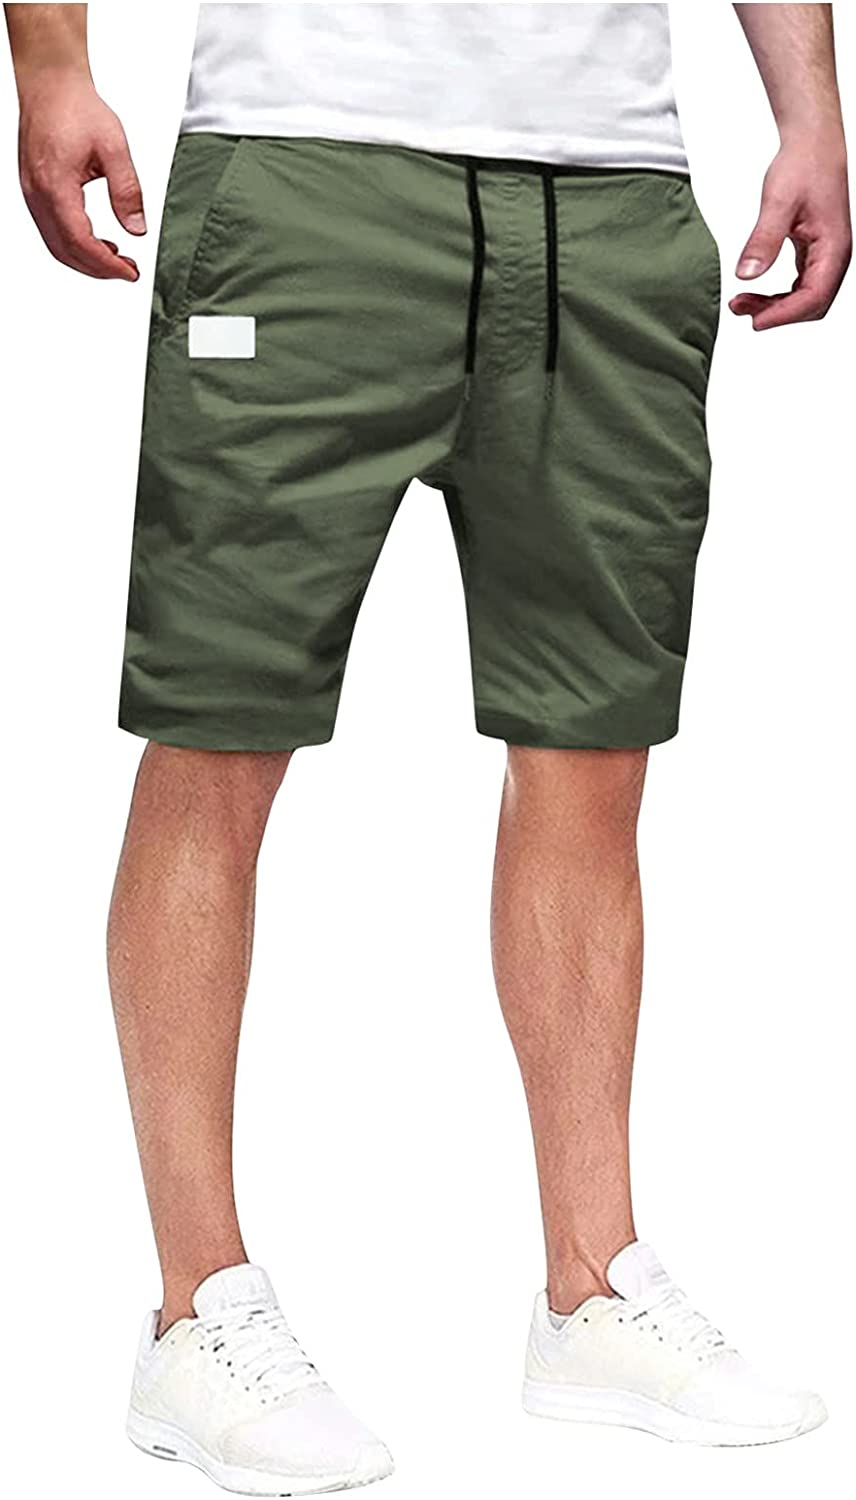 Selling rankings Toamen Men Finally popular brand Cargo Shorts Summer Fit Casual Relaxed L Beach